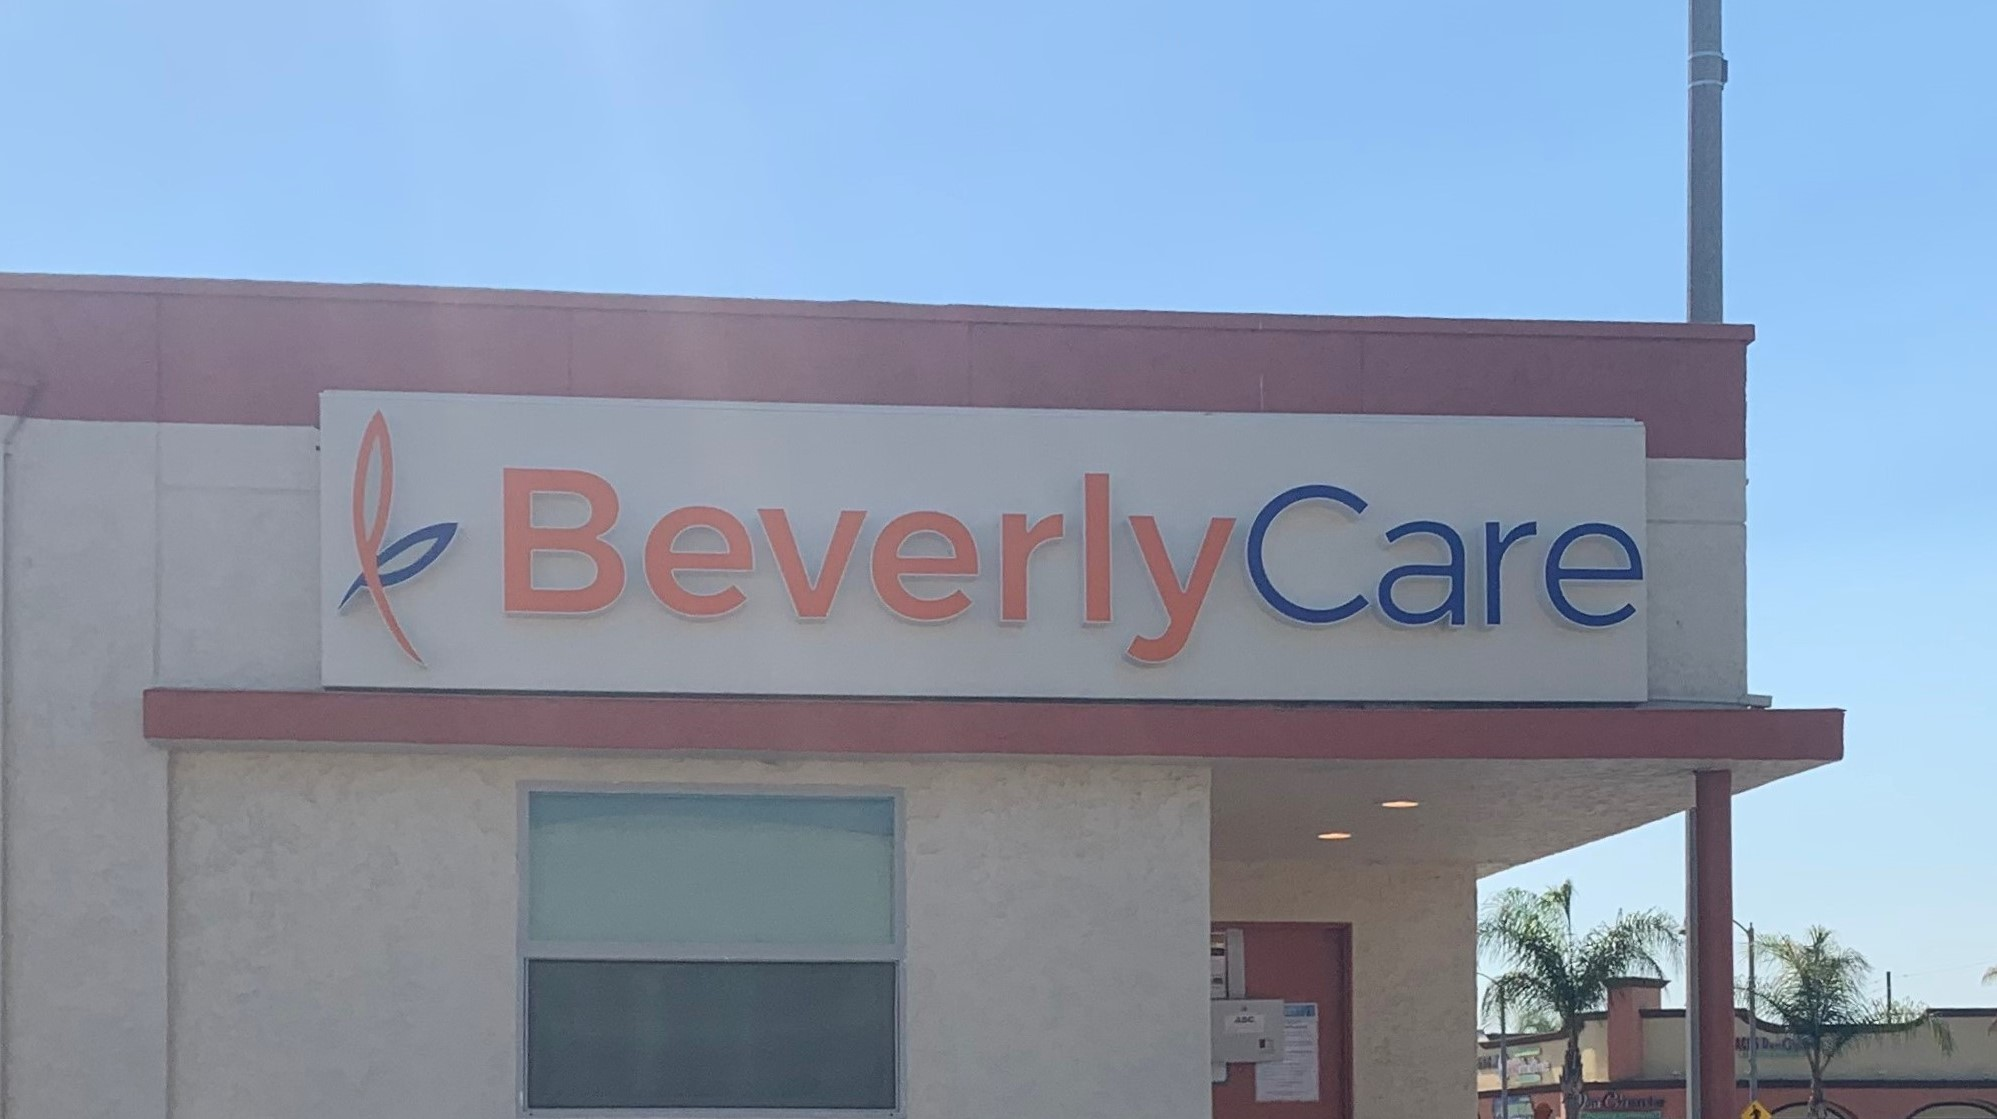 Second set of front lit channel letters for BeverlyCare. This is part of the channel letters sign package for their Montebello location at the Kelpien Center.